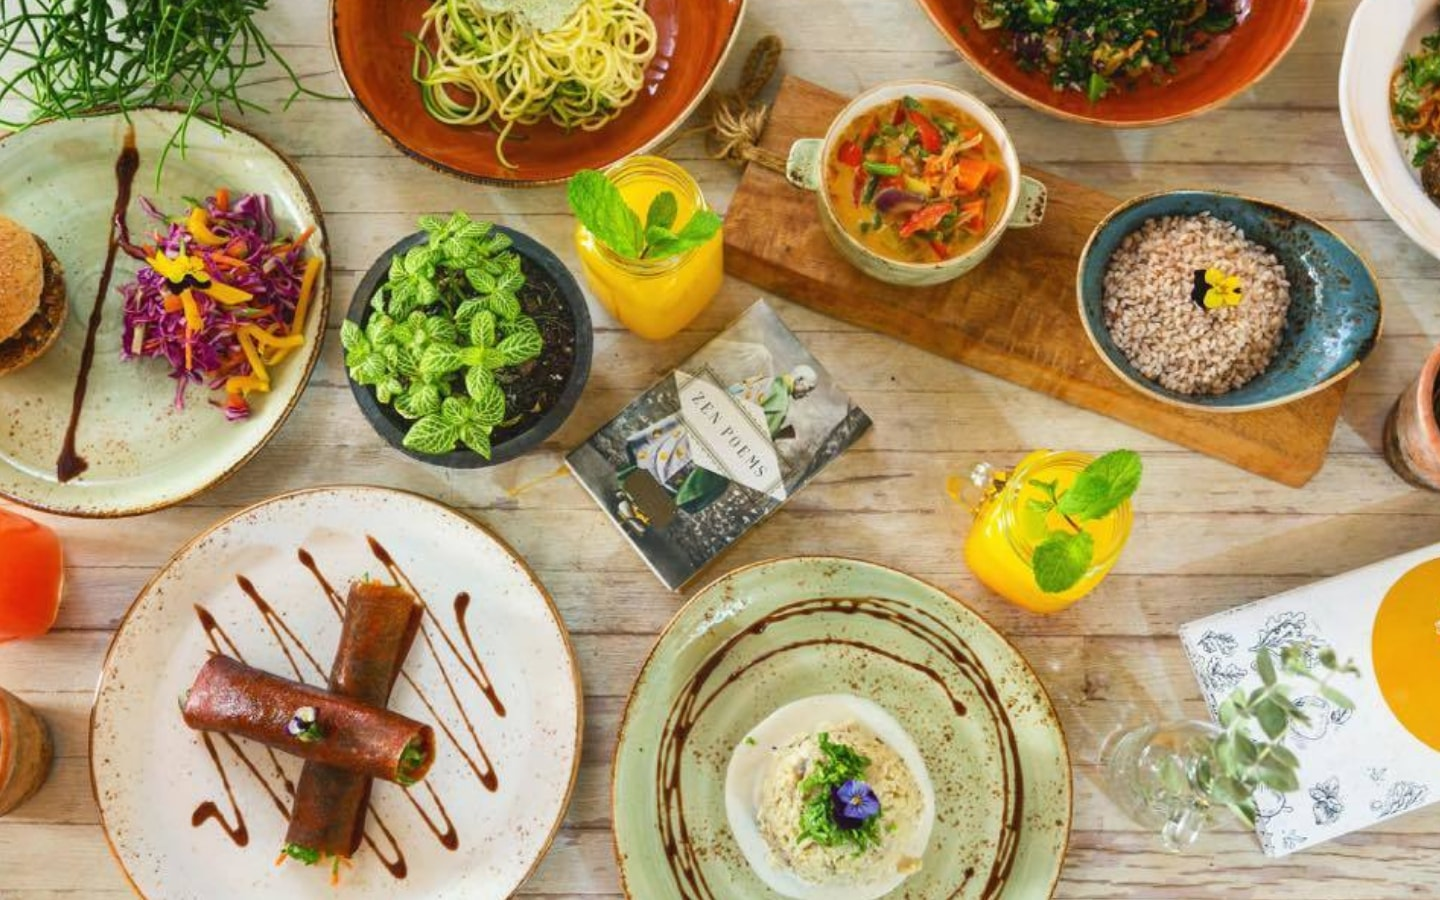 Healthy food in Dubai from Little Erth by Nabz and G